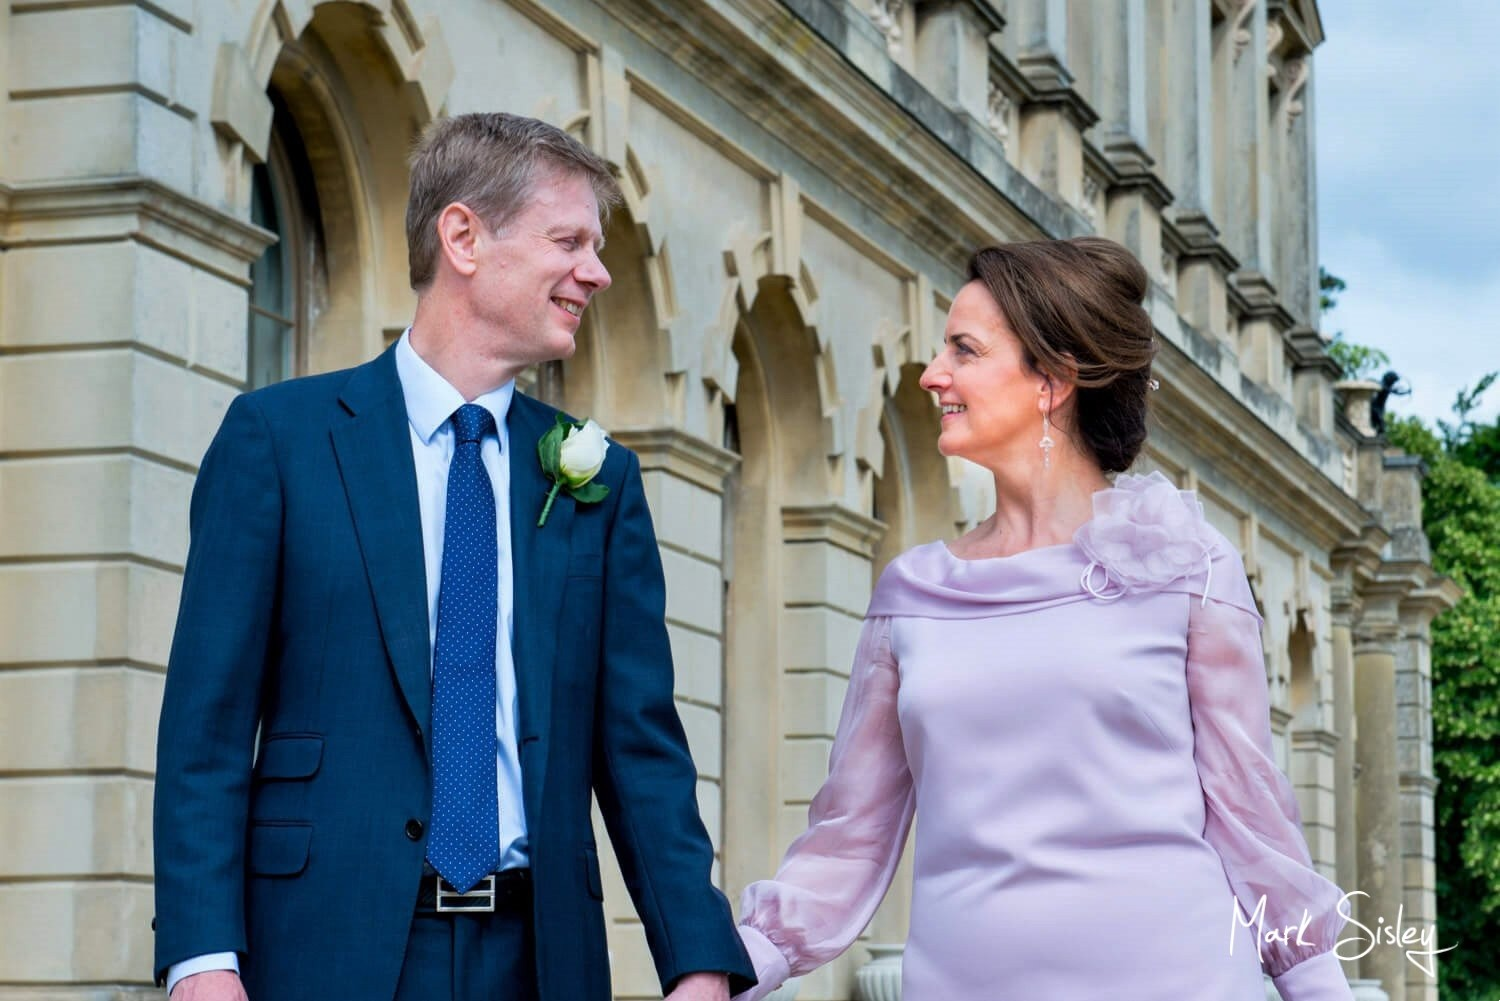 Cliveden House wedding photography outdoors on the rear terrace - blog post